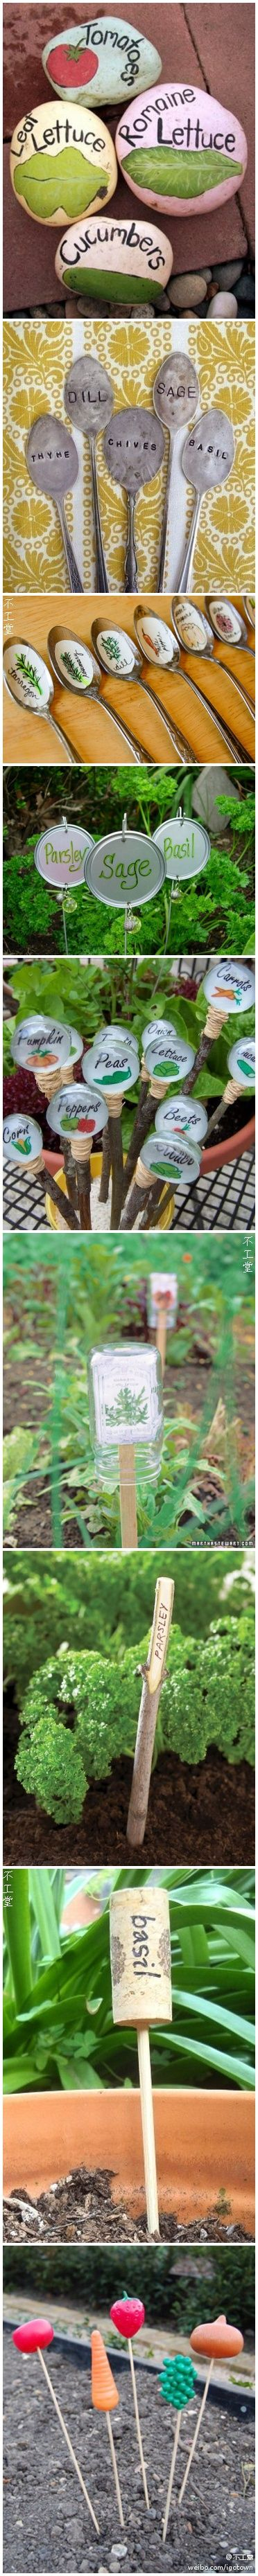 clever garden markers